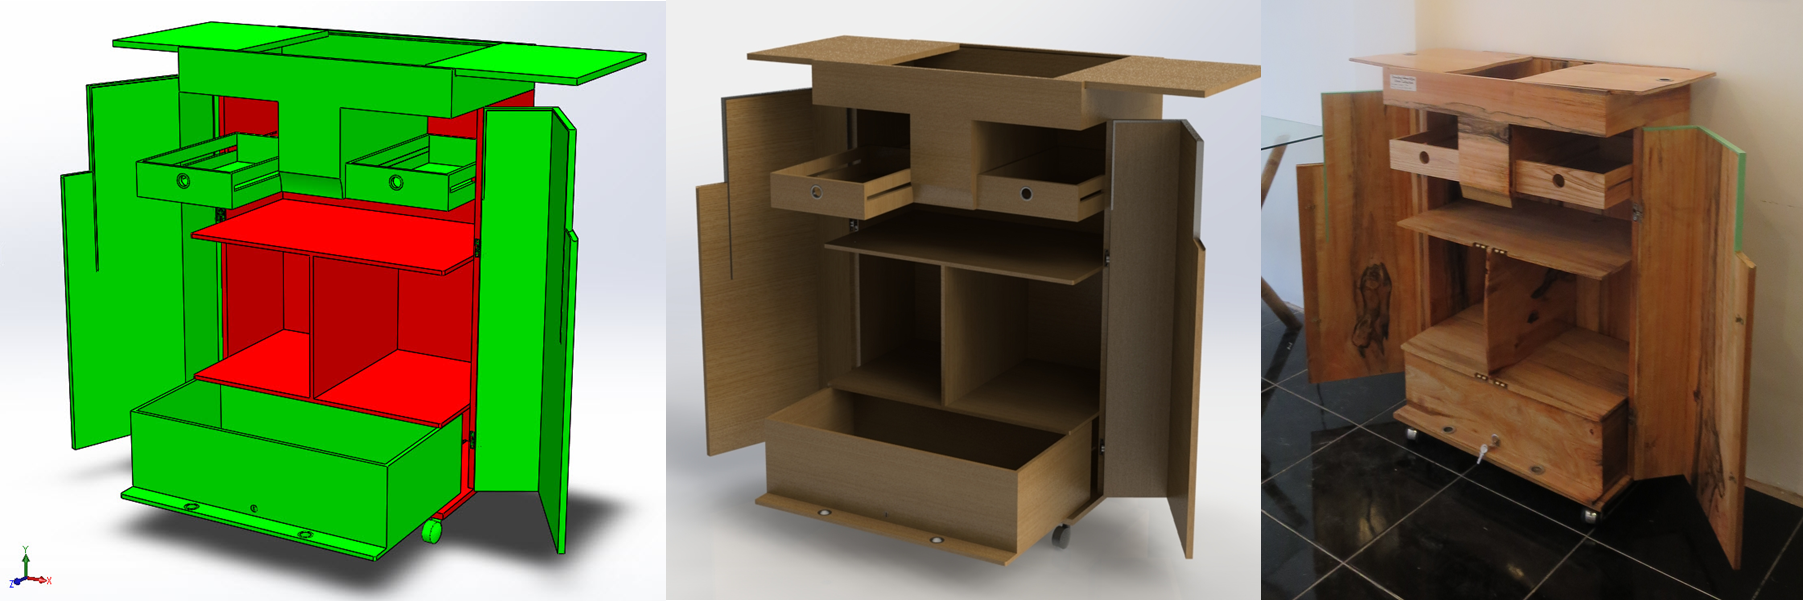 The Cabinet - Leapfrog Design from 3D to real